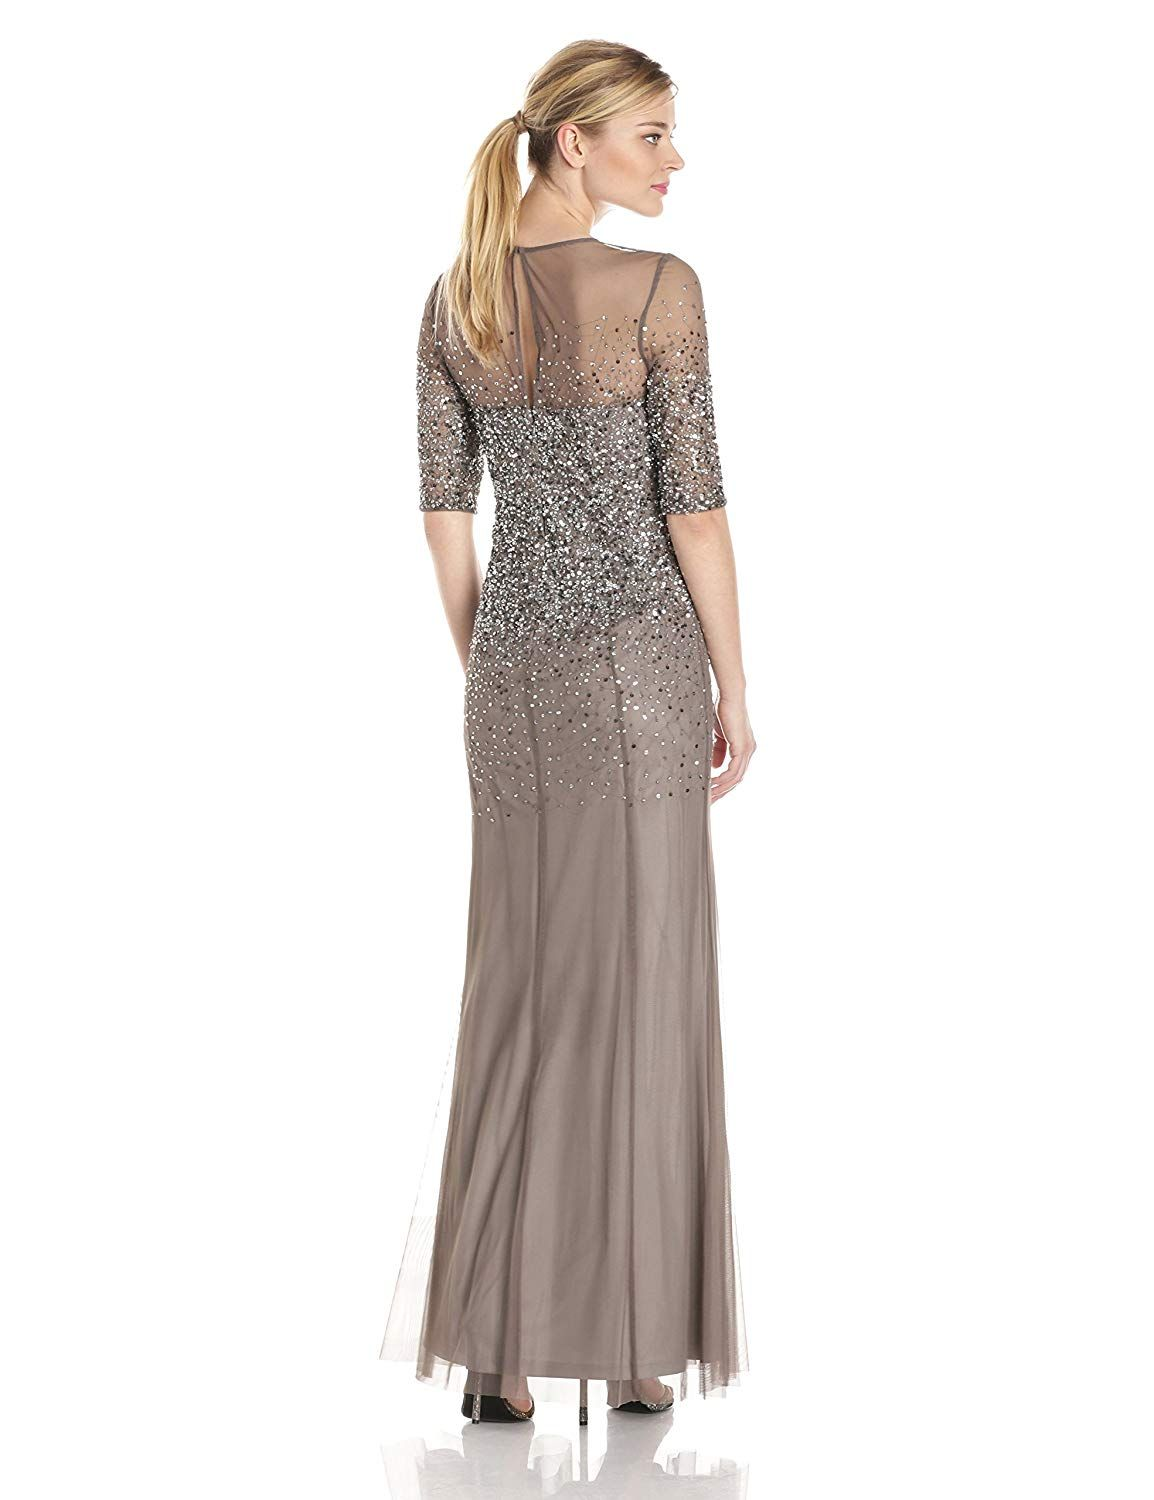 6aeafac39d8e0a Adrianna Papell Women's 3/4 Sleeve Beaded Illusion Gown with Sweetheart  Neckline